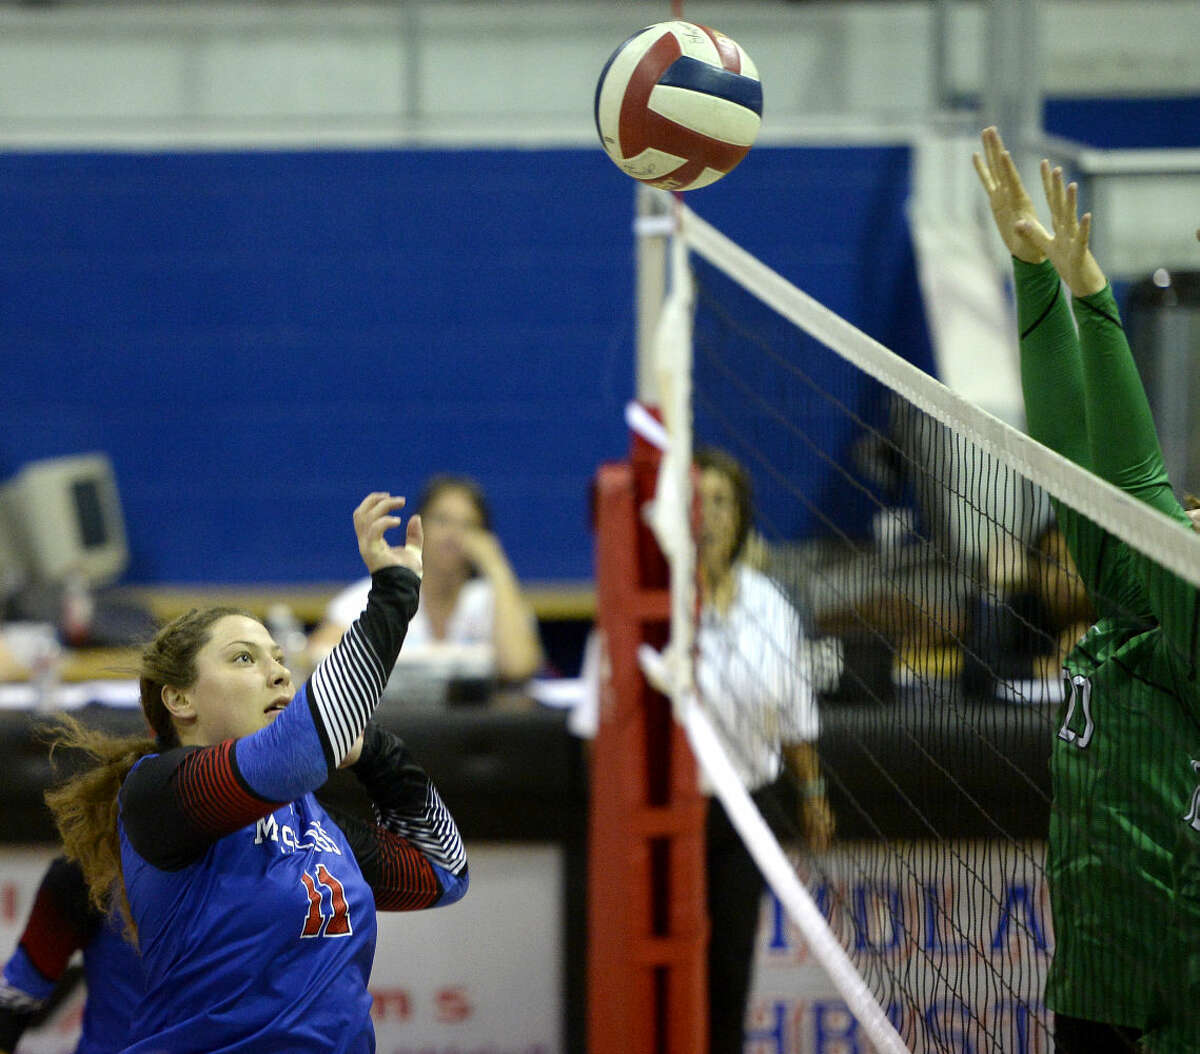 Midland Christian's Bayle Weaver (11) hits against Monahans on Tuesday, August 18, 2015, at the McGraw Events Center. James Durbin/Reporter-Telegram